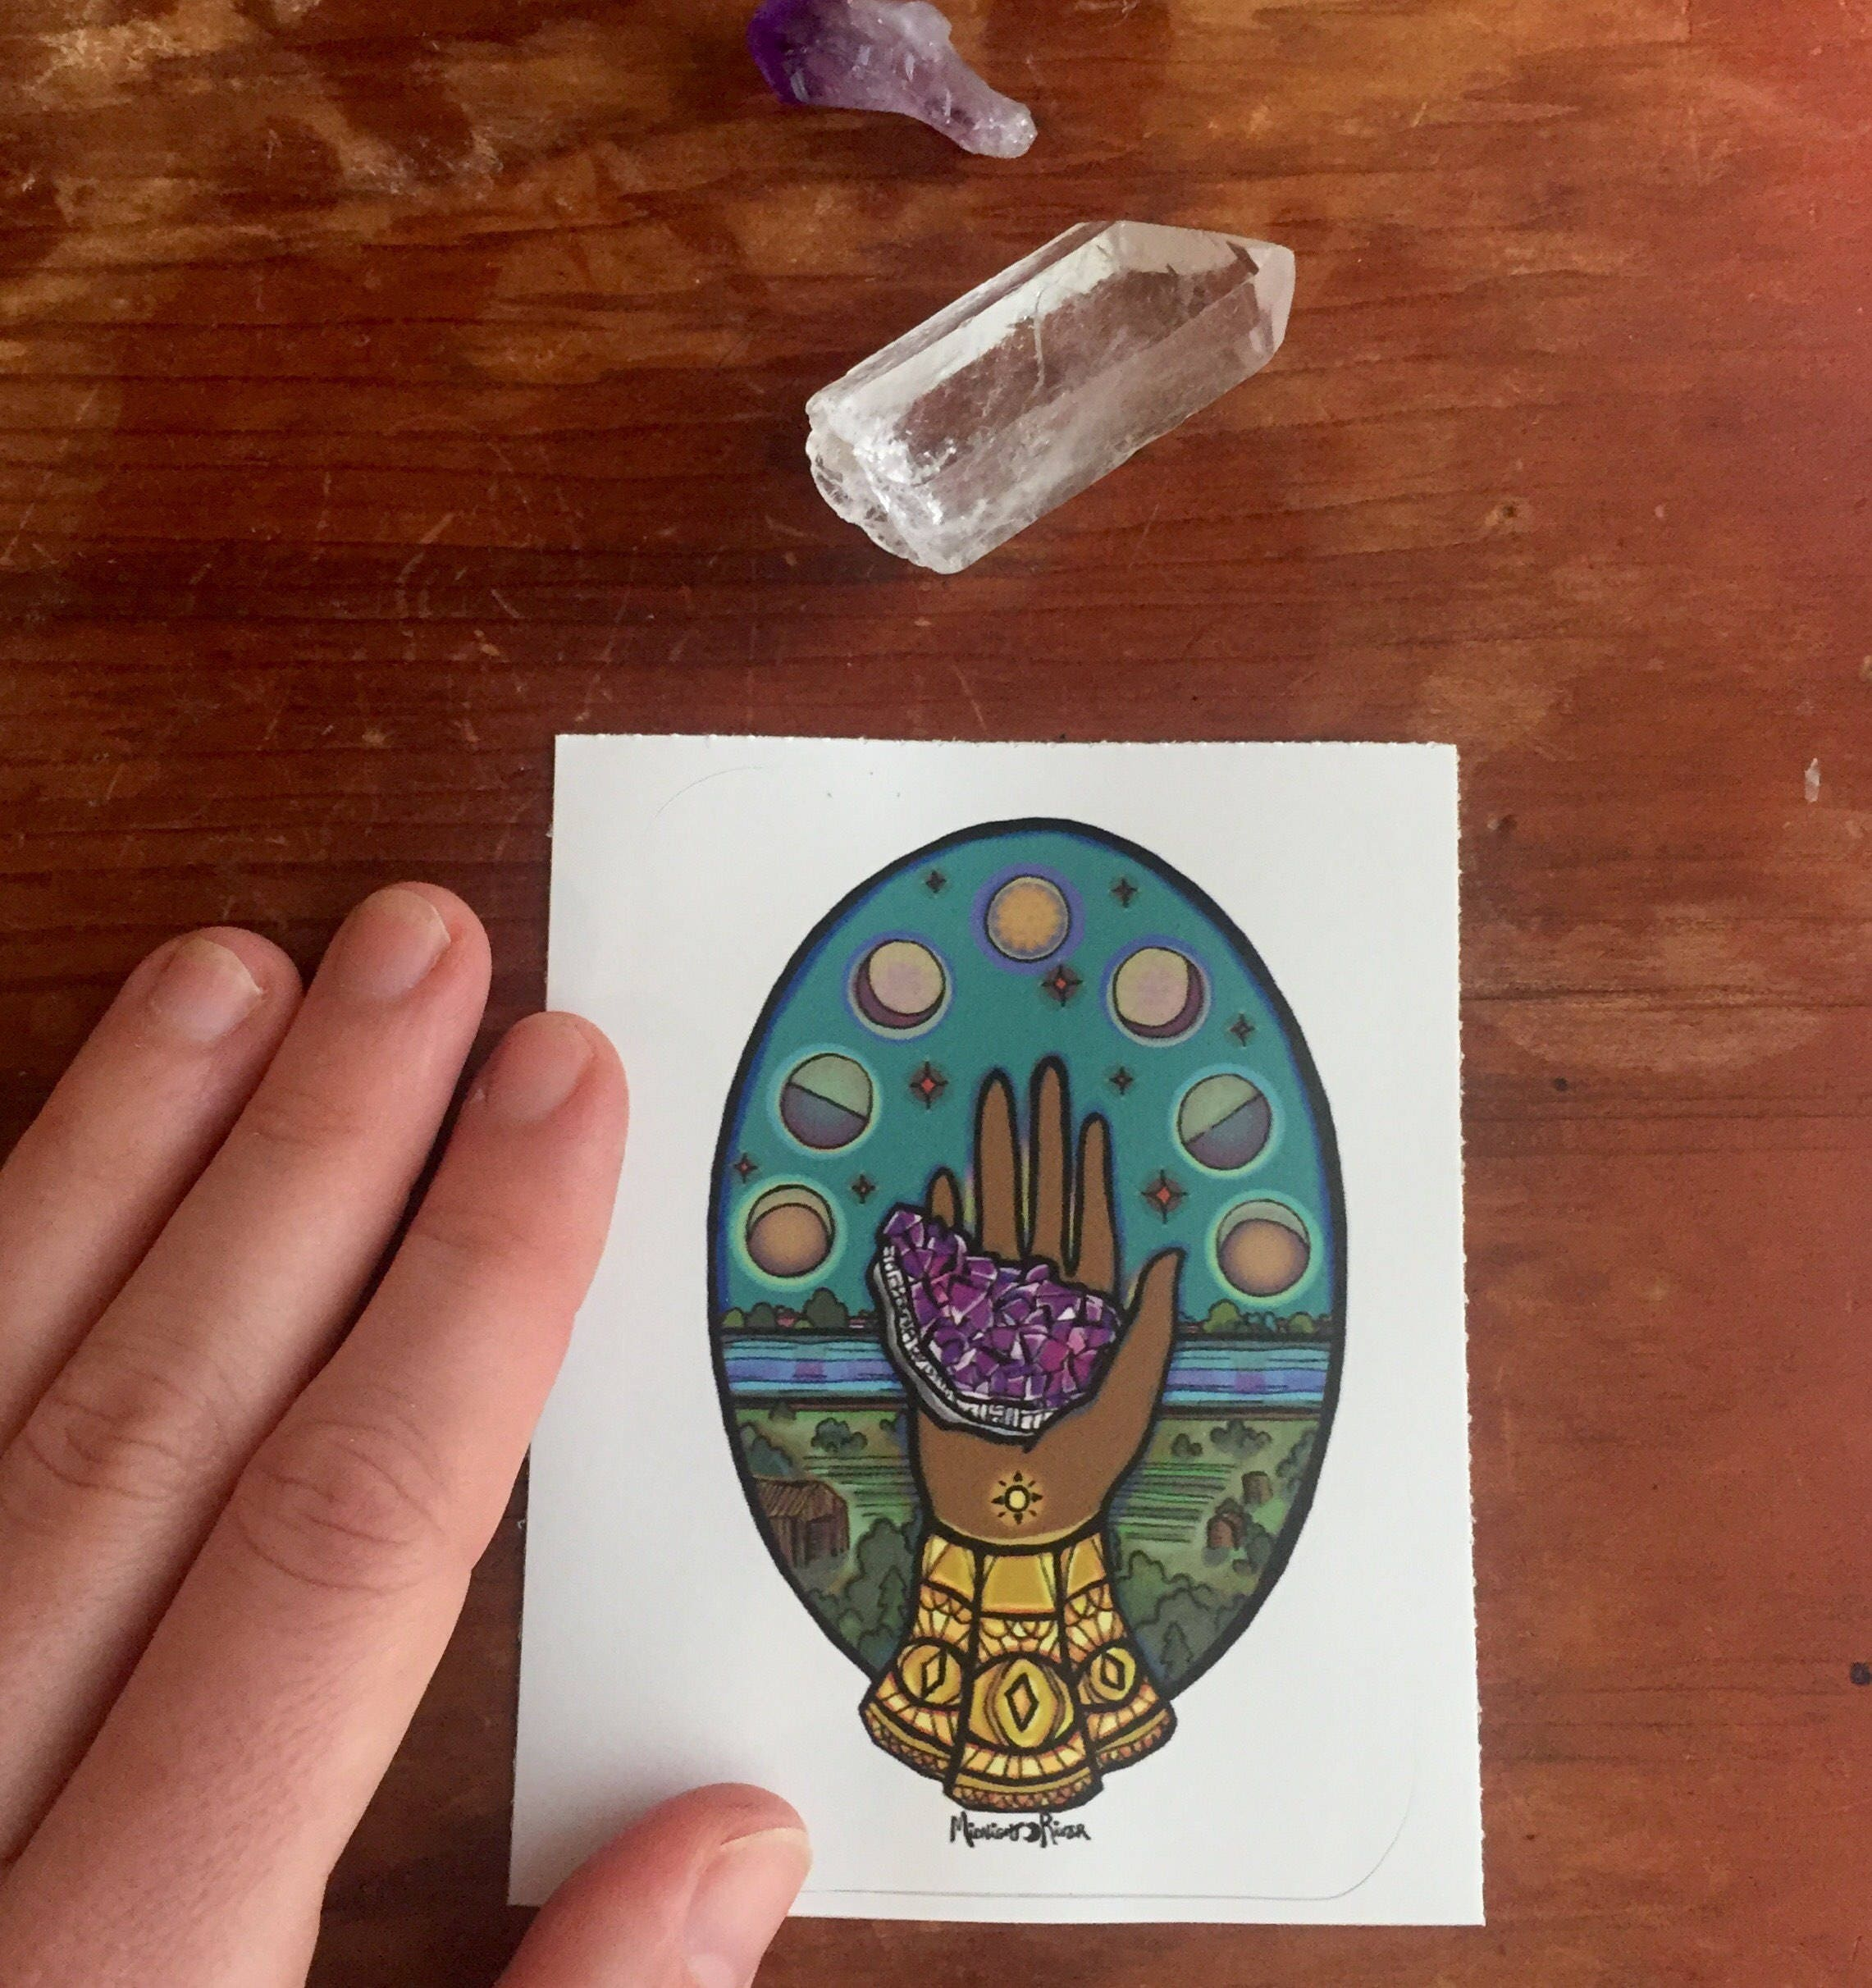 Sticker Amethyst Offering // Hand Holding Crystal Illustration / 3x3 / Moon Phases, Water, All-Seeing Eye, Gemstone / Magical Nature Art